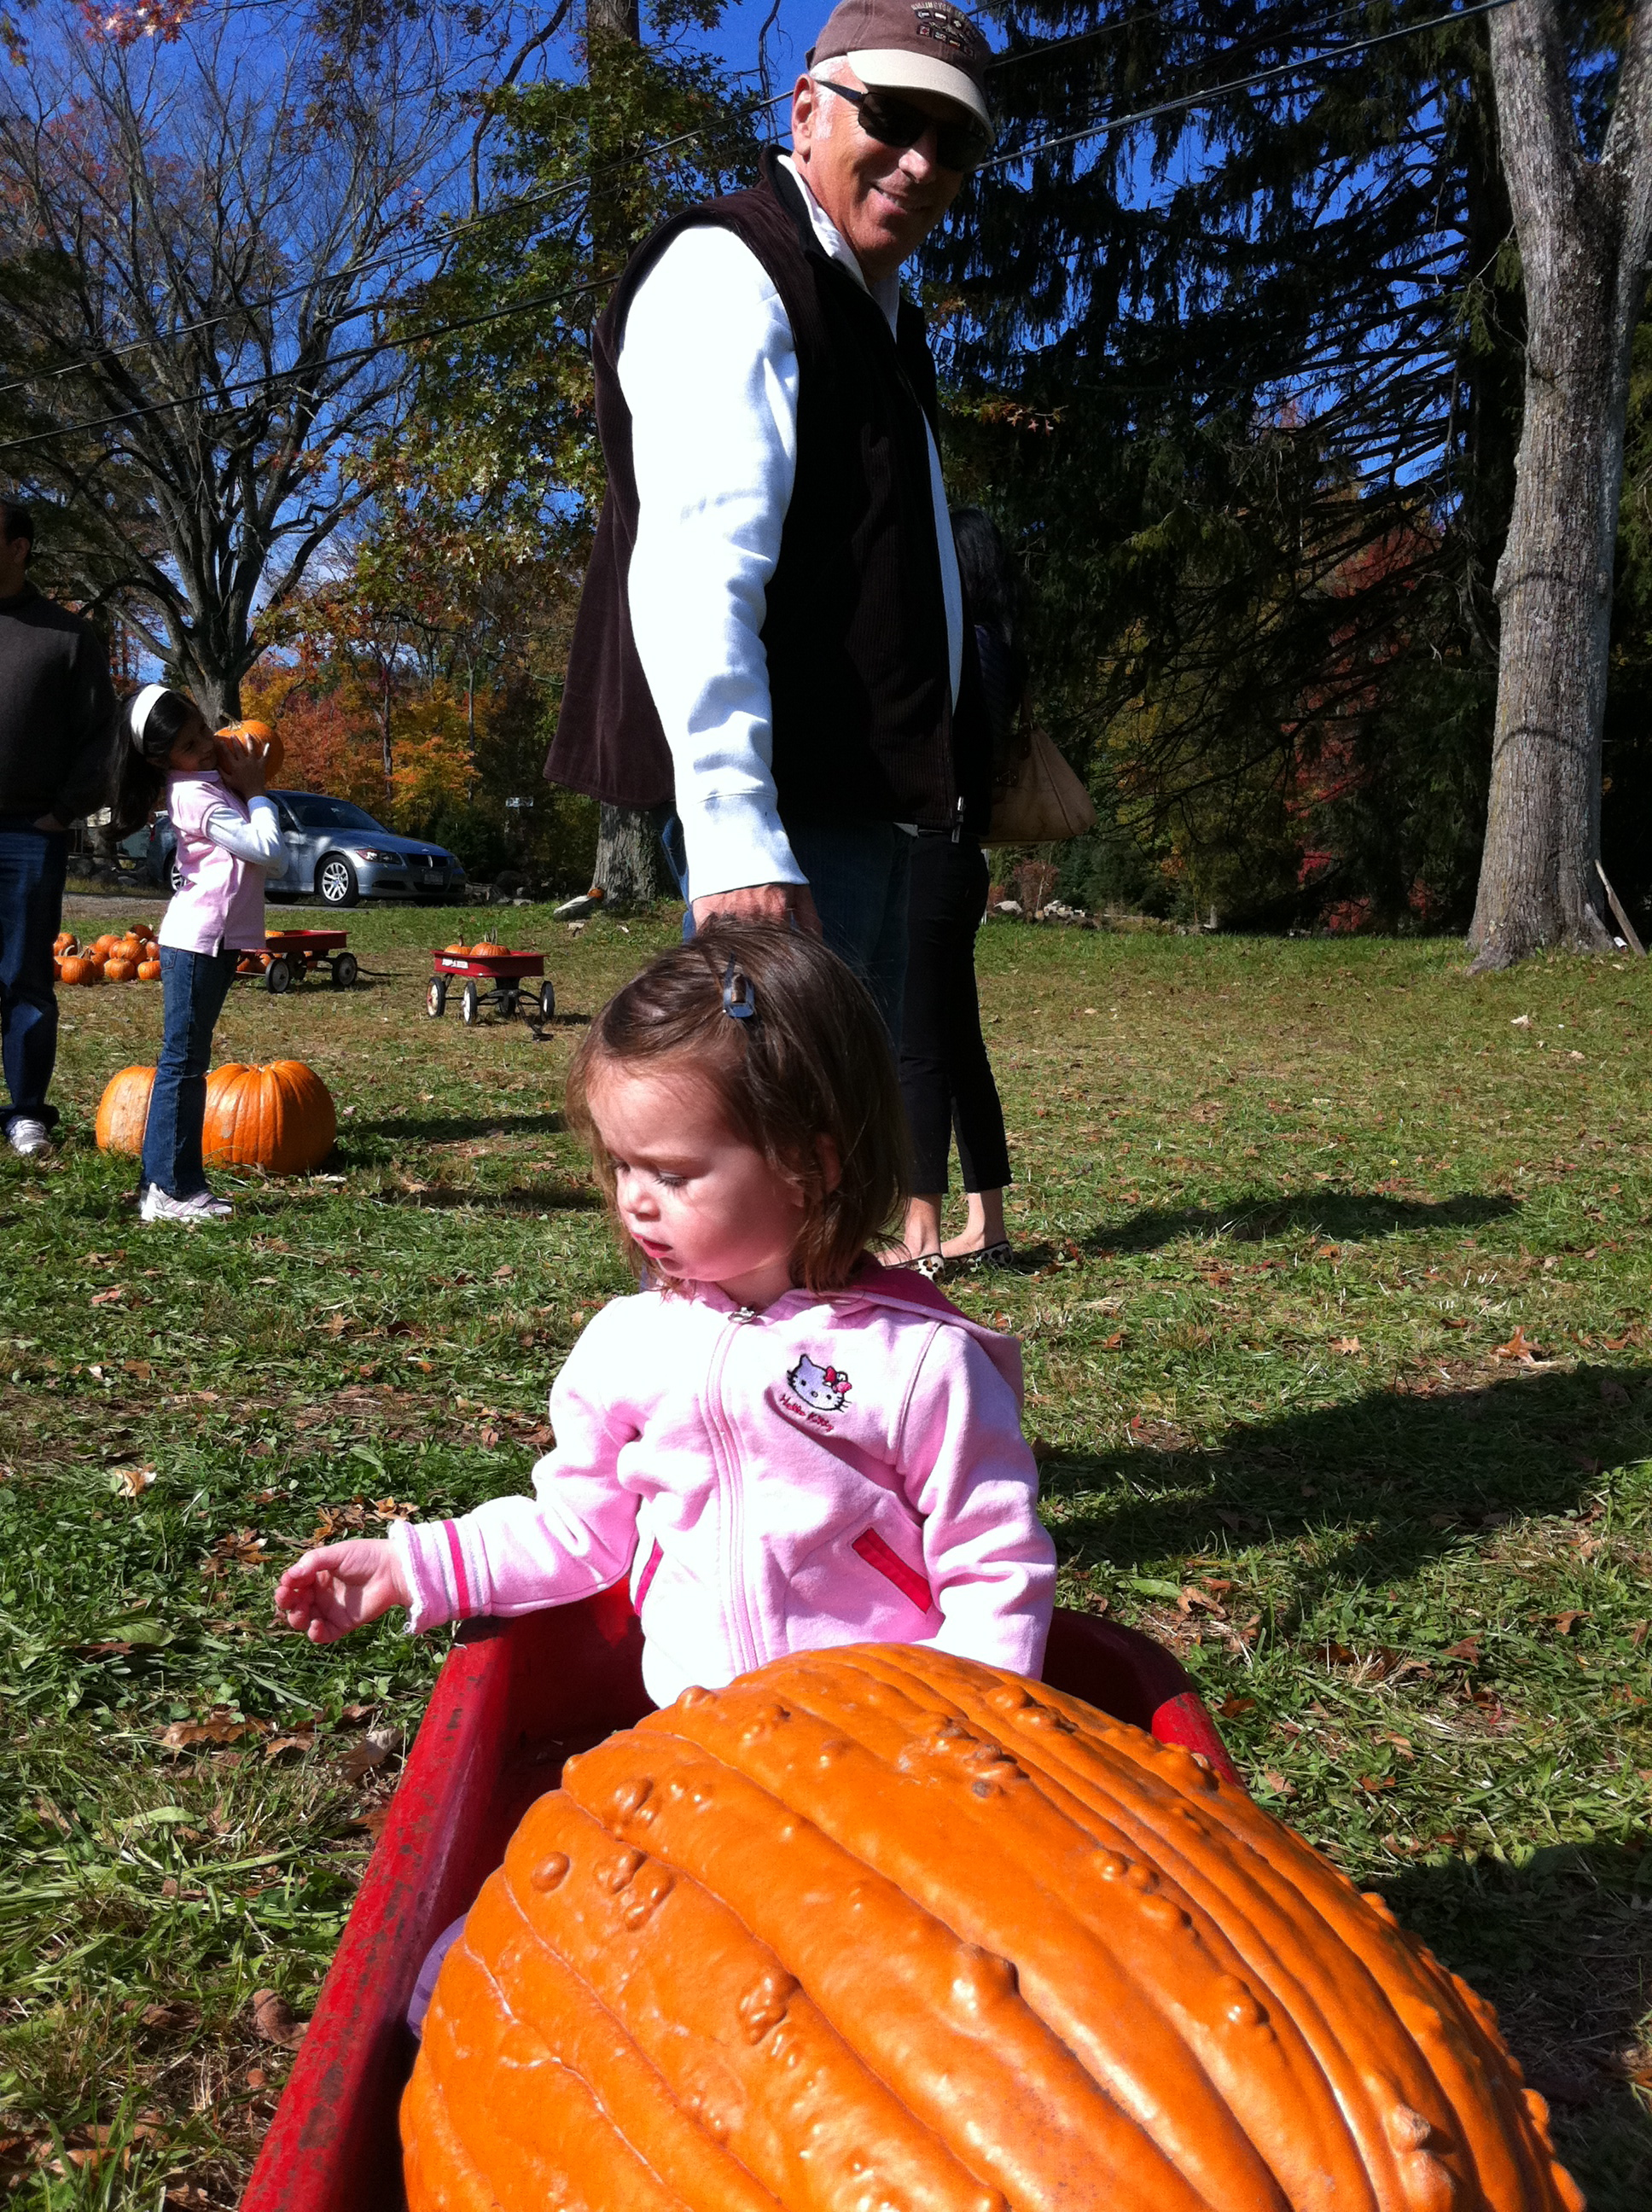 Avi's a big boss and made my Dad pull her and a humungous pumpkin in the wagon.